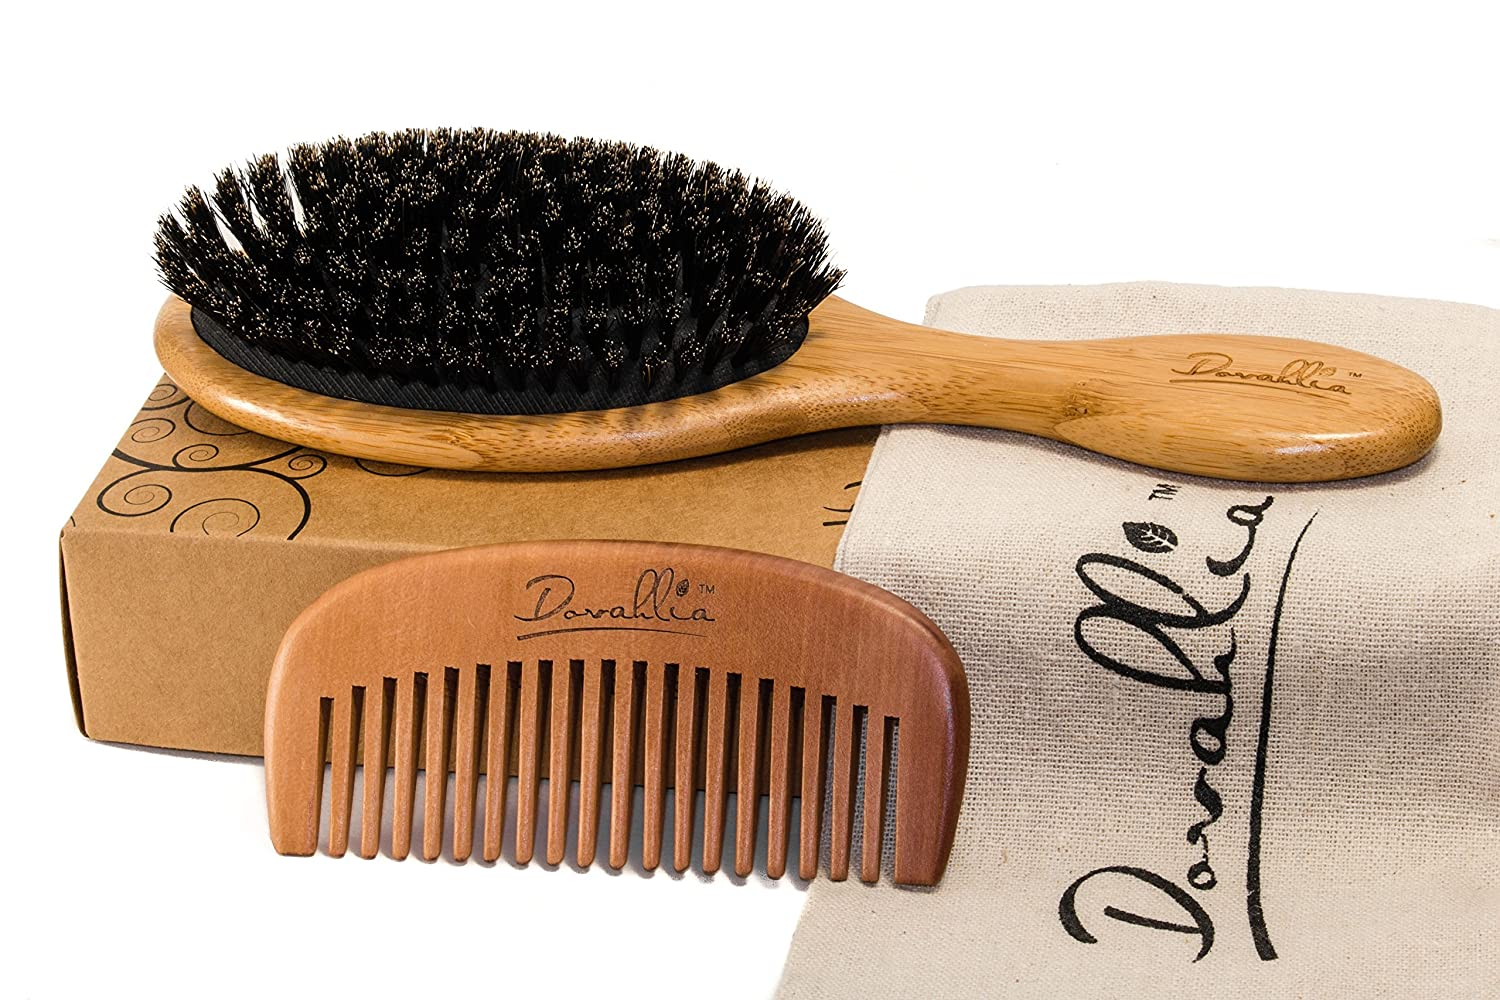 Boar Bristle Hair Brush Set For Women And Men Brus Designed Thin Normal Adds Shine Improves Texture Wood Comb Gift